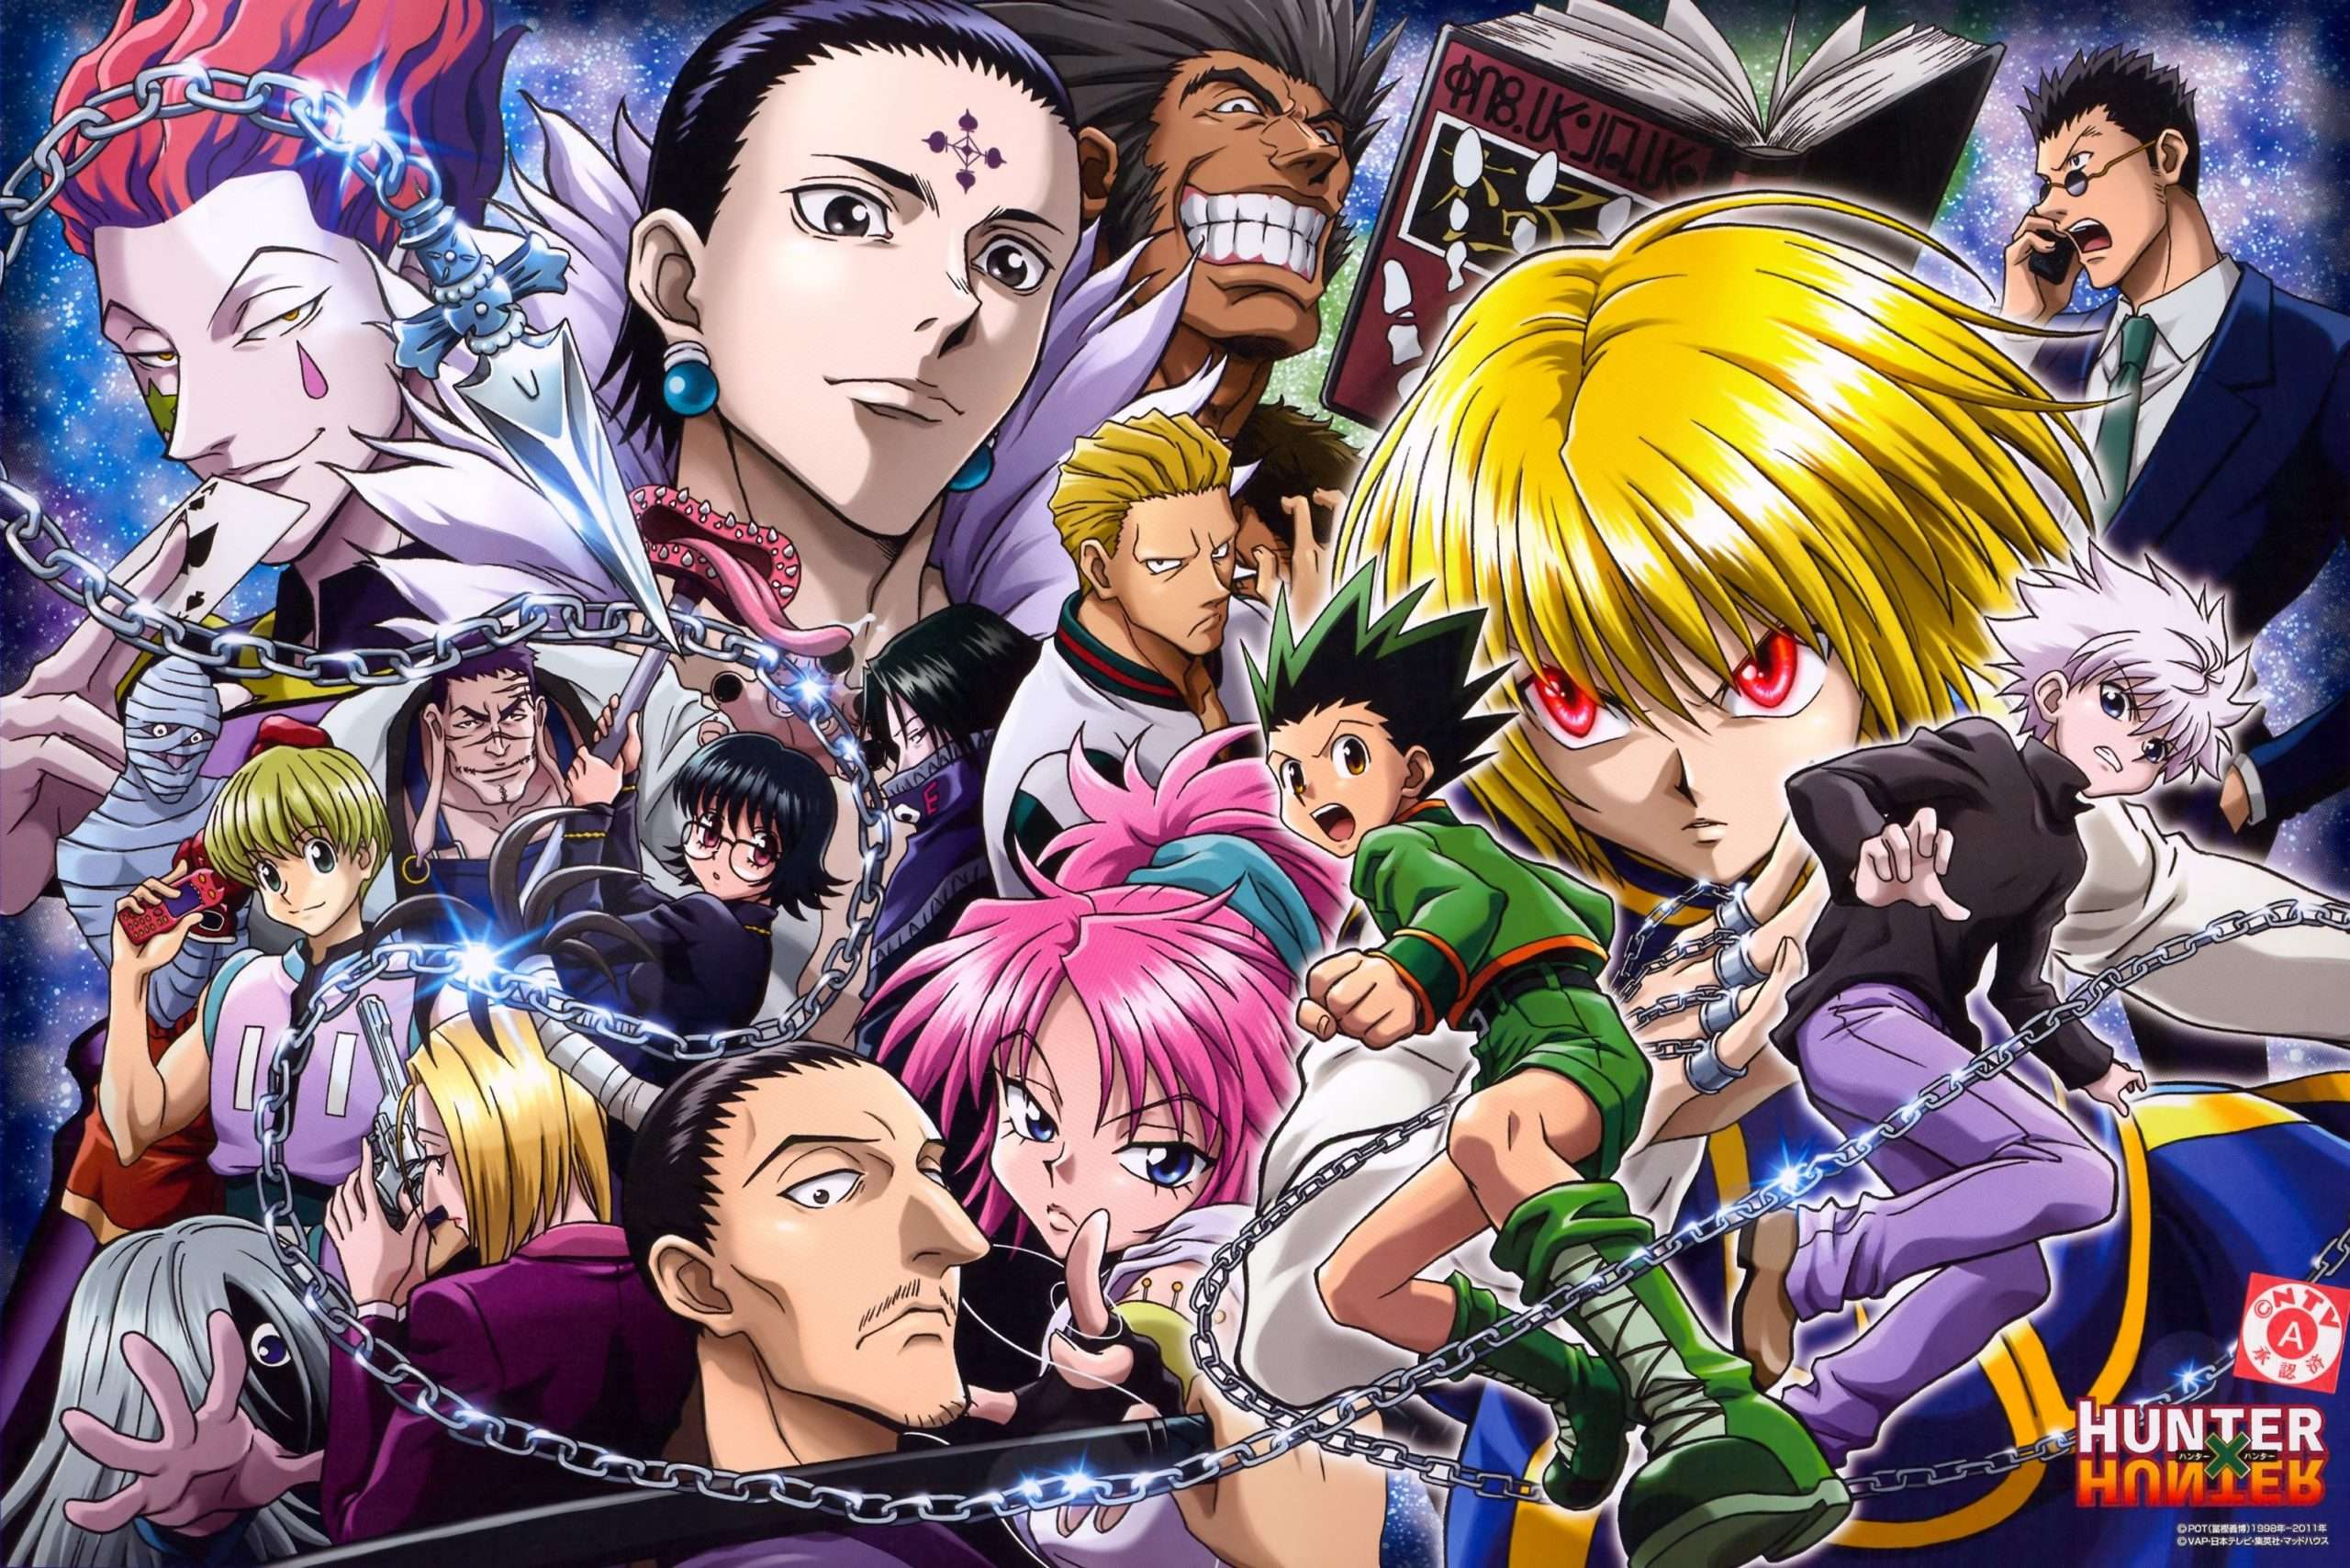 hunter-x-hunter-2011-gon-killua-kurapika-hisoka-phantom-troupe-leorio